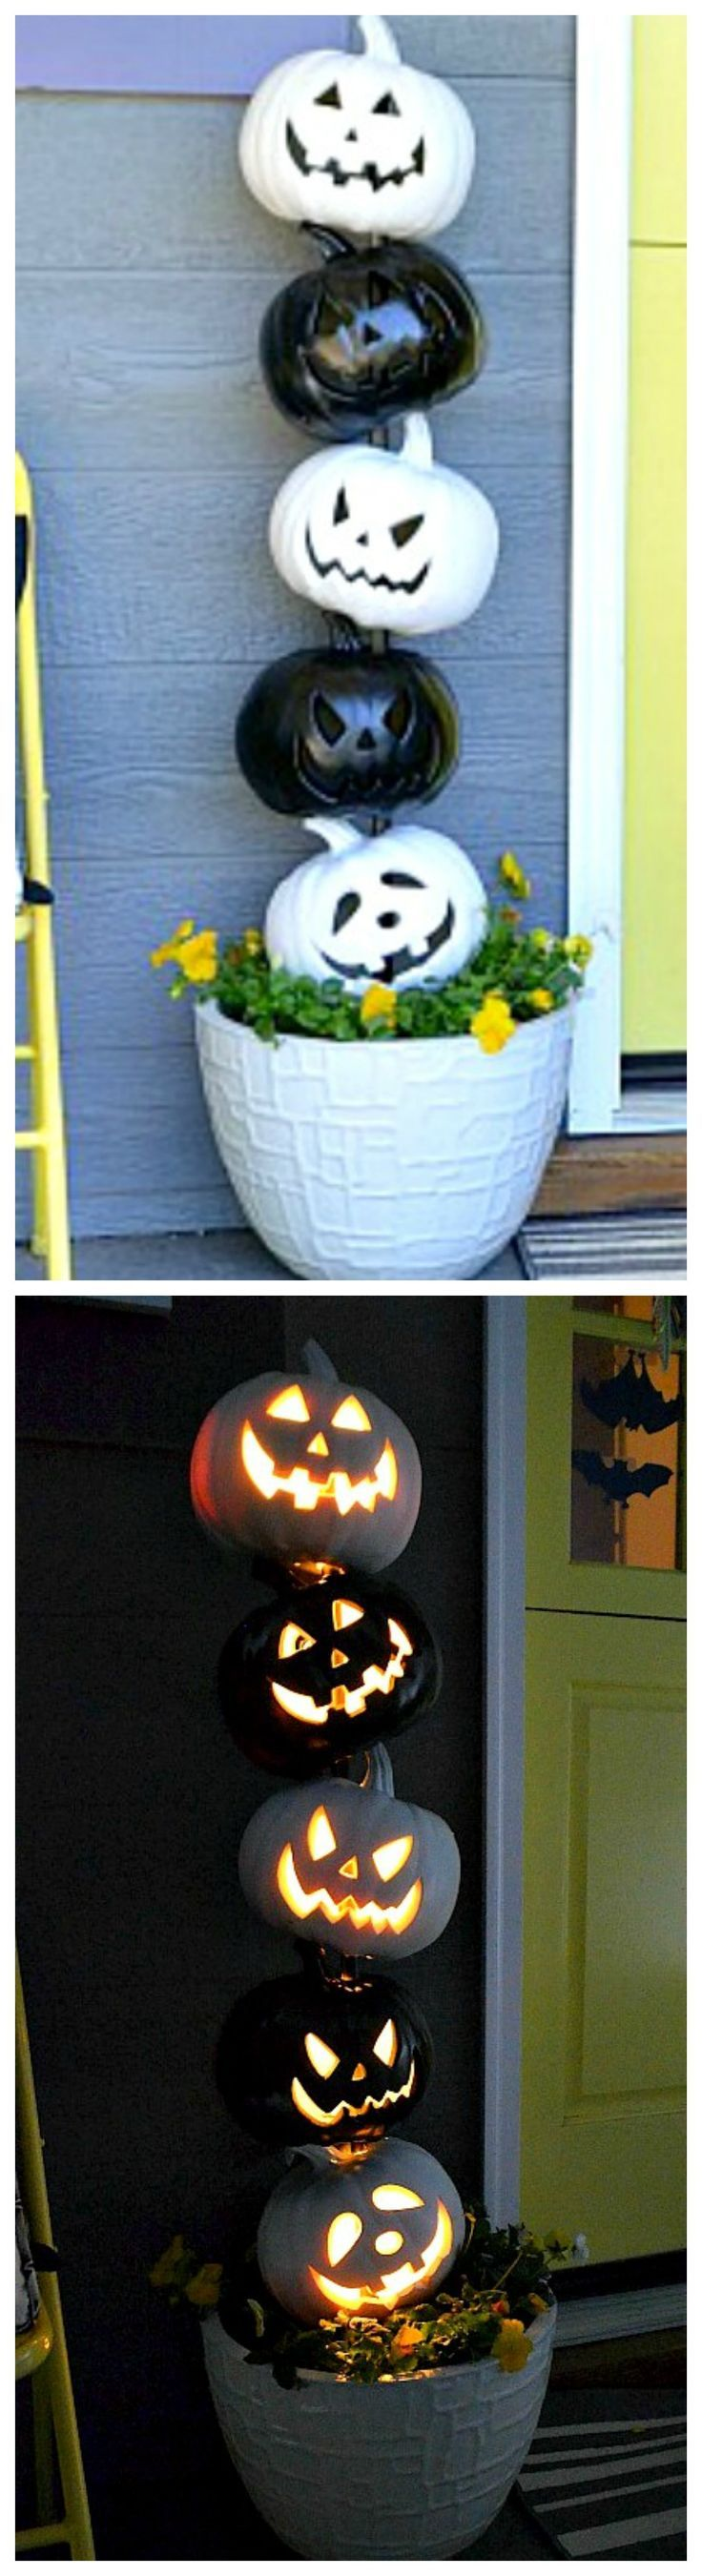 Halloween decorations - DIY Easy Black and White Jack-o-Lantern - halloween decorations diy